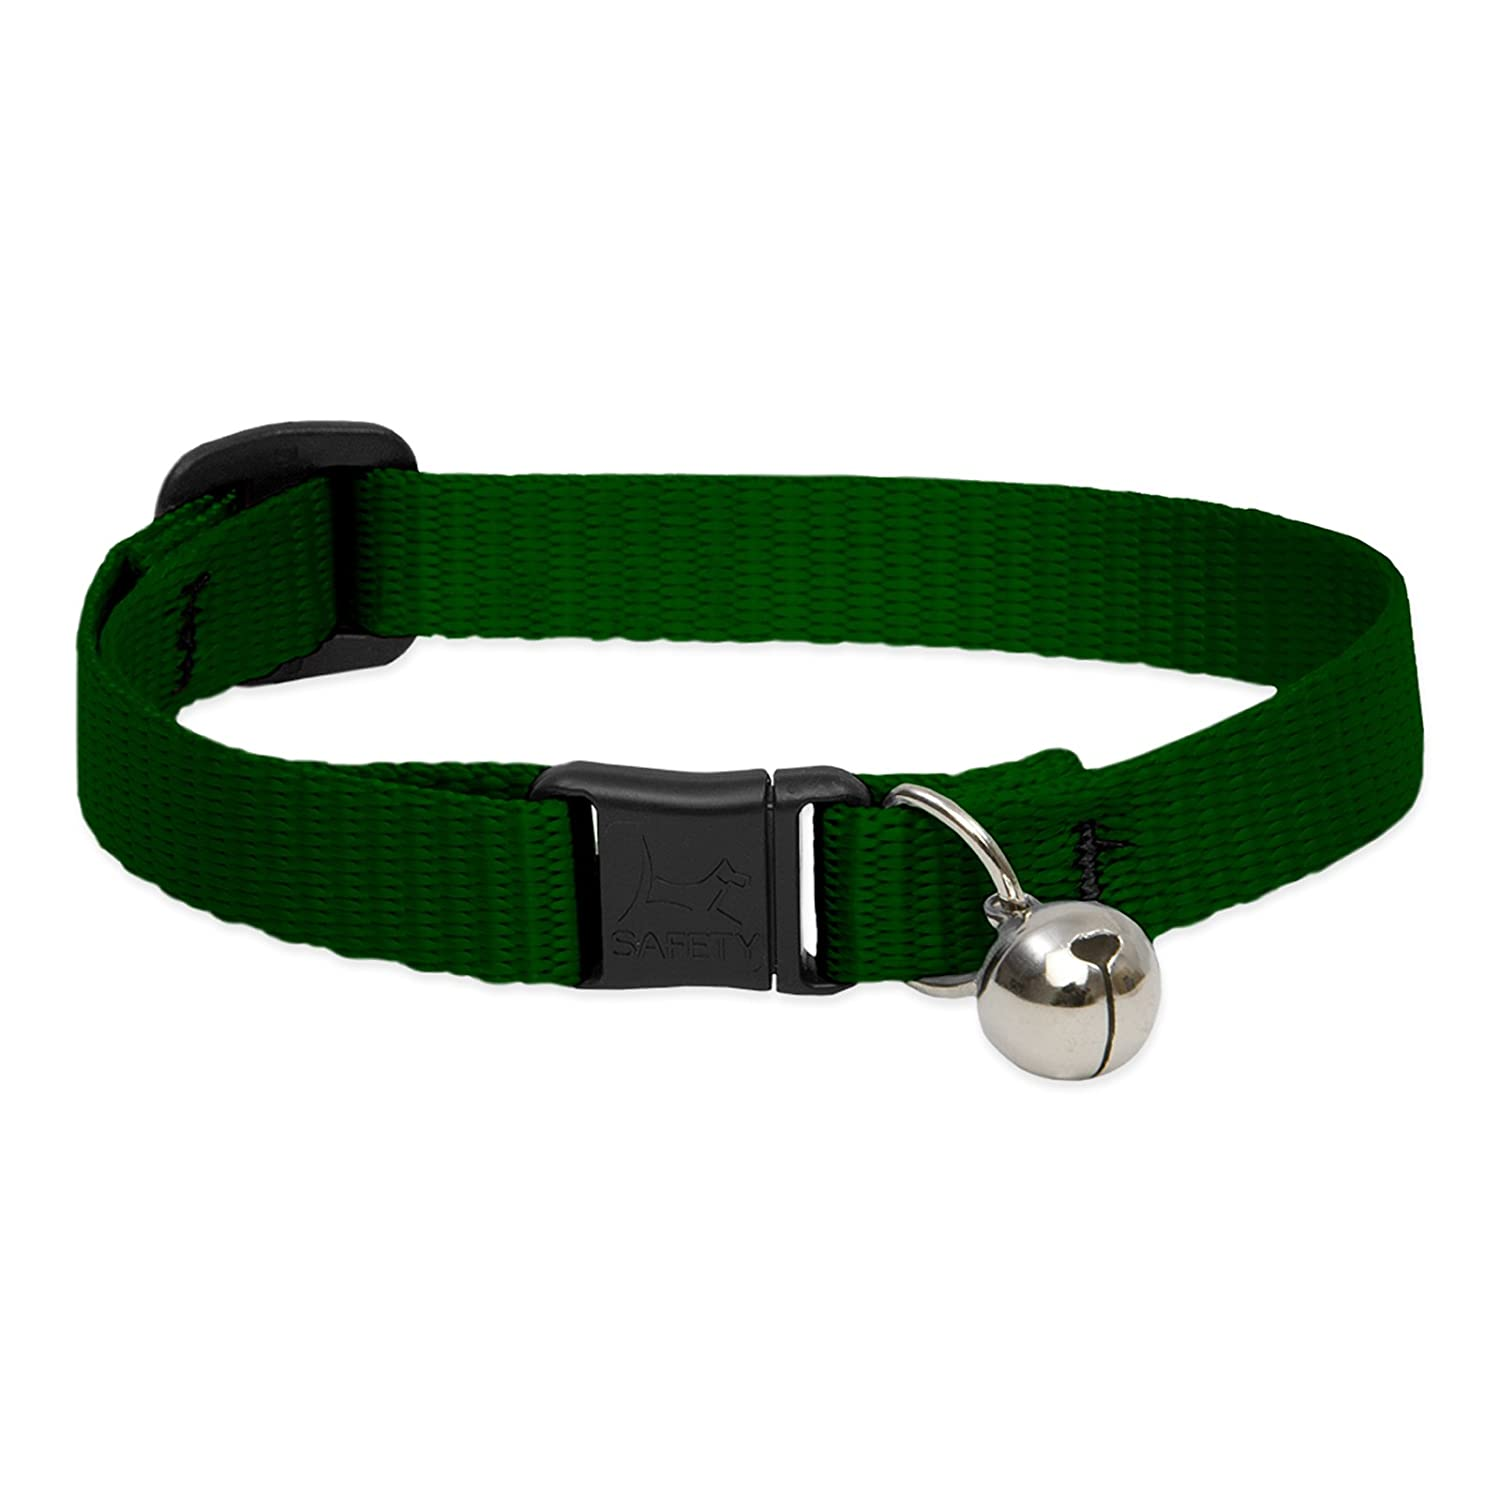 "Lupine 1/2"" Cat Safety Collar With Adjustable 8 12"" Neck by Lupine Pet"